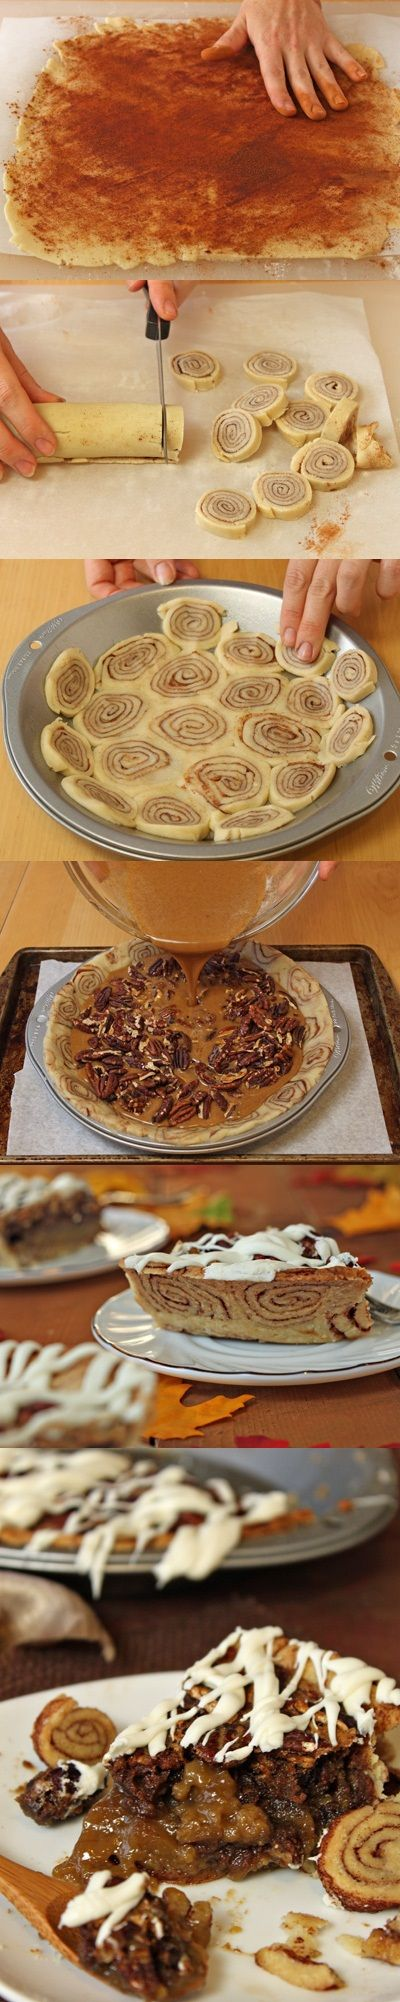 Cinnamon Bun Pecan Pie Recipe.. I'M SO MAKING THIS!!!